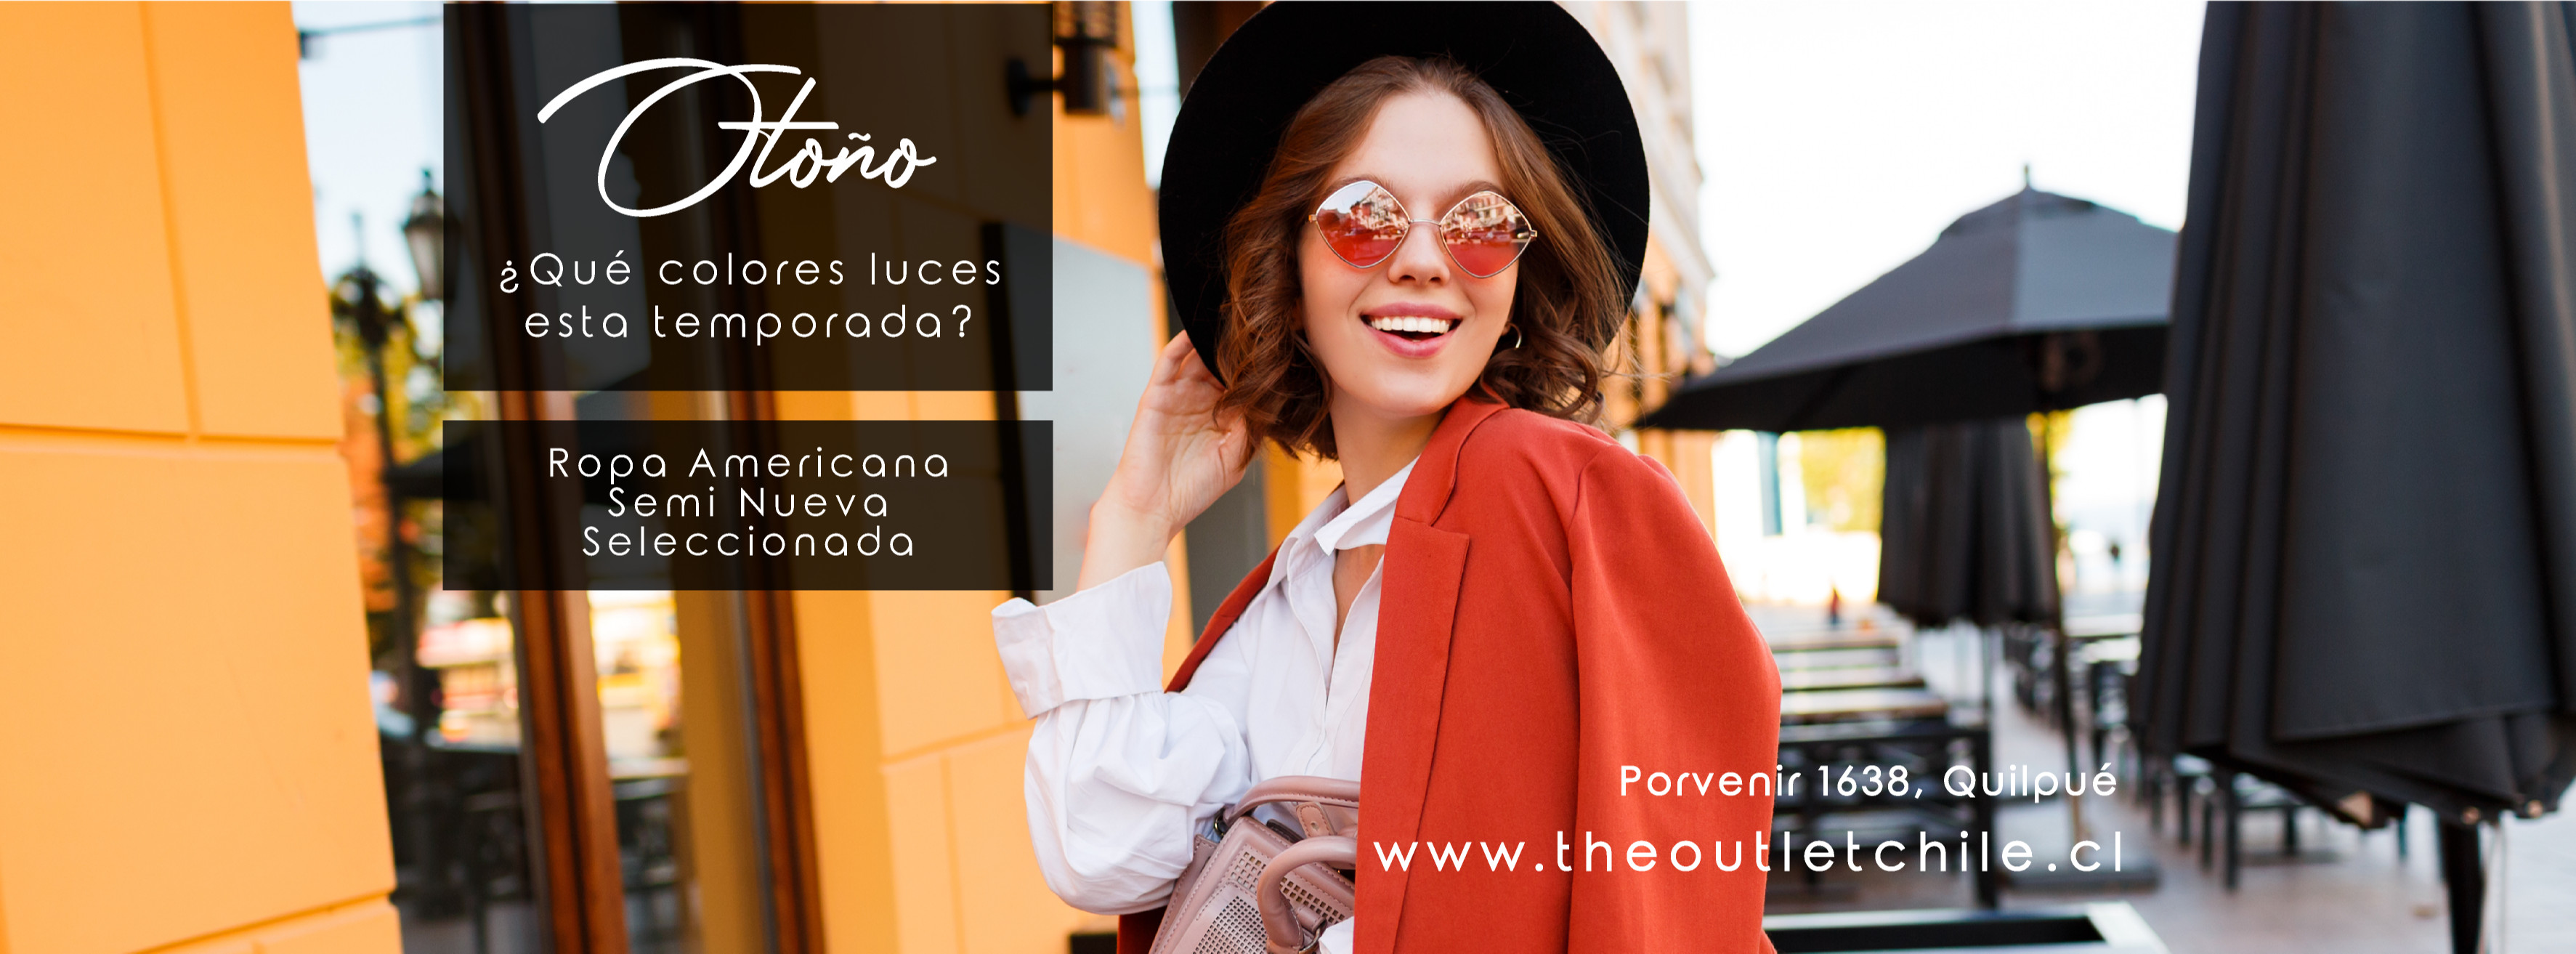 Banner the outlet chile